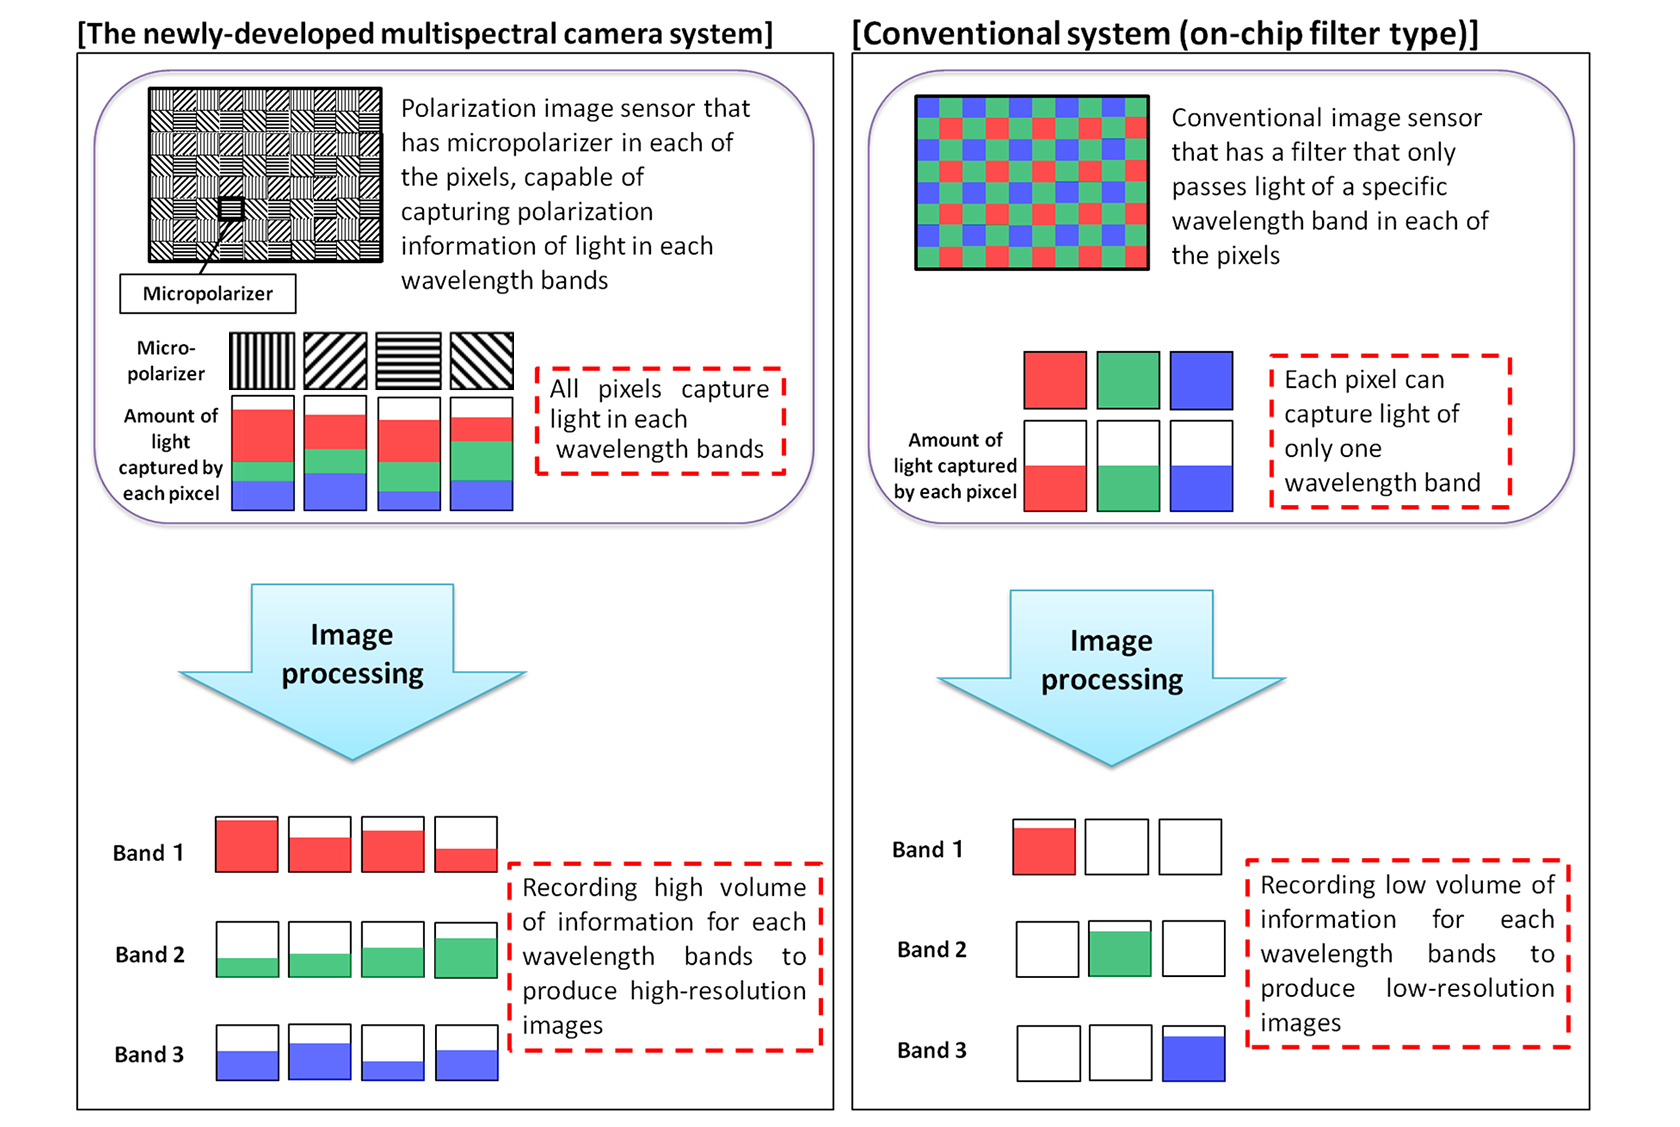 Figure 2: Comparison between the newly-developed multispectral camera system and a conventional camera system